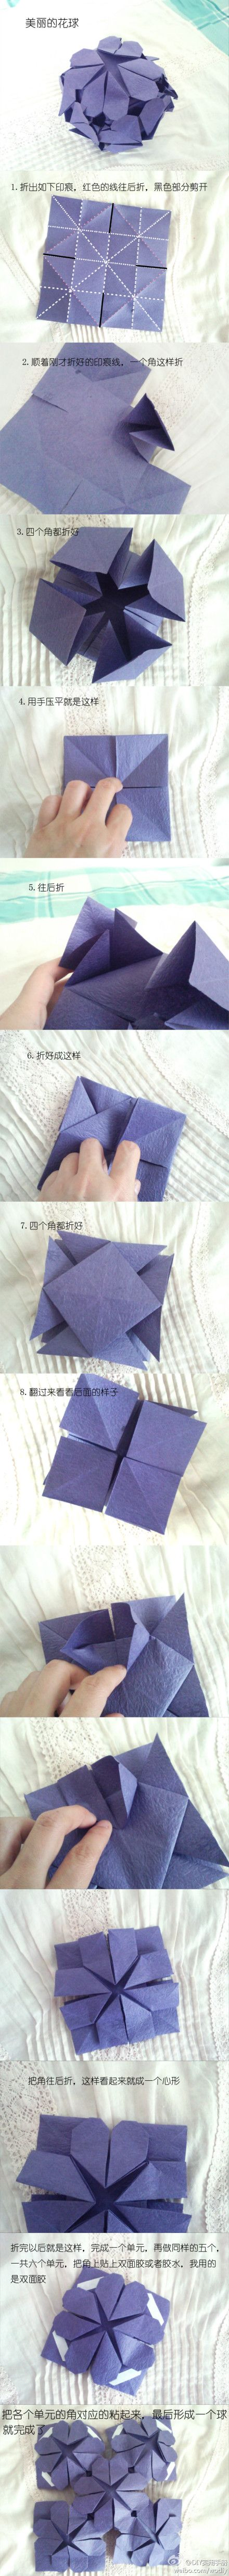 how to make paper heart ball